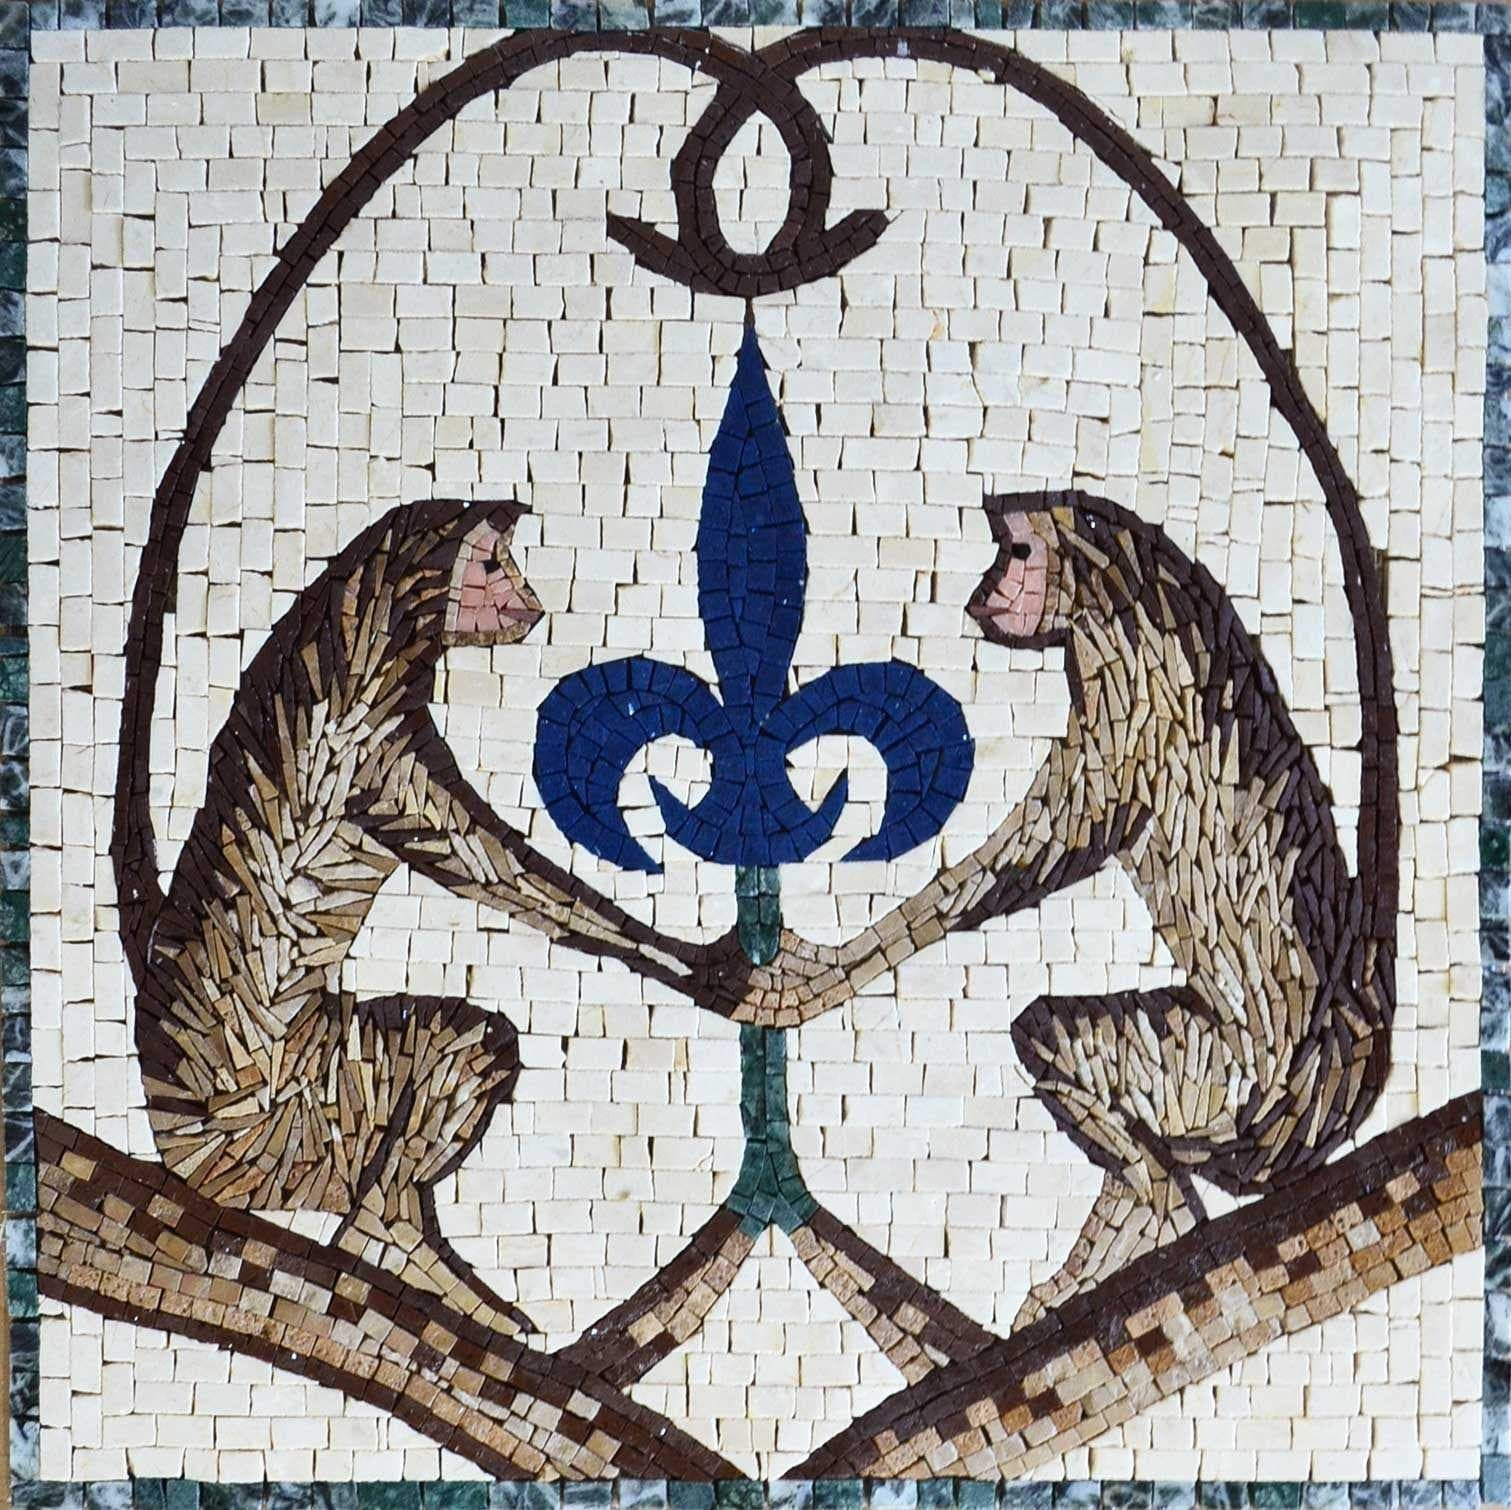 Mosaic Animal Art - Chimps and Lys Flower